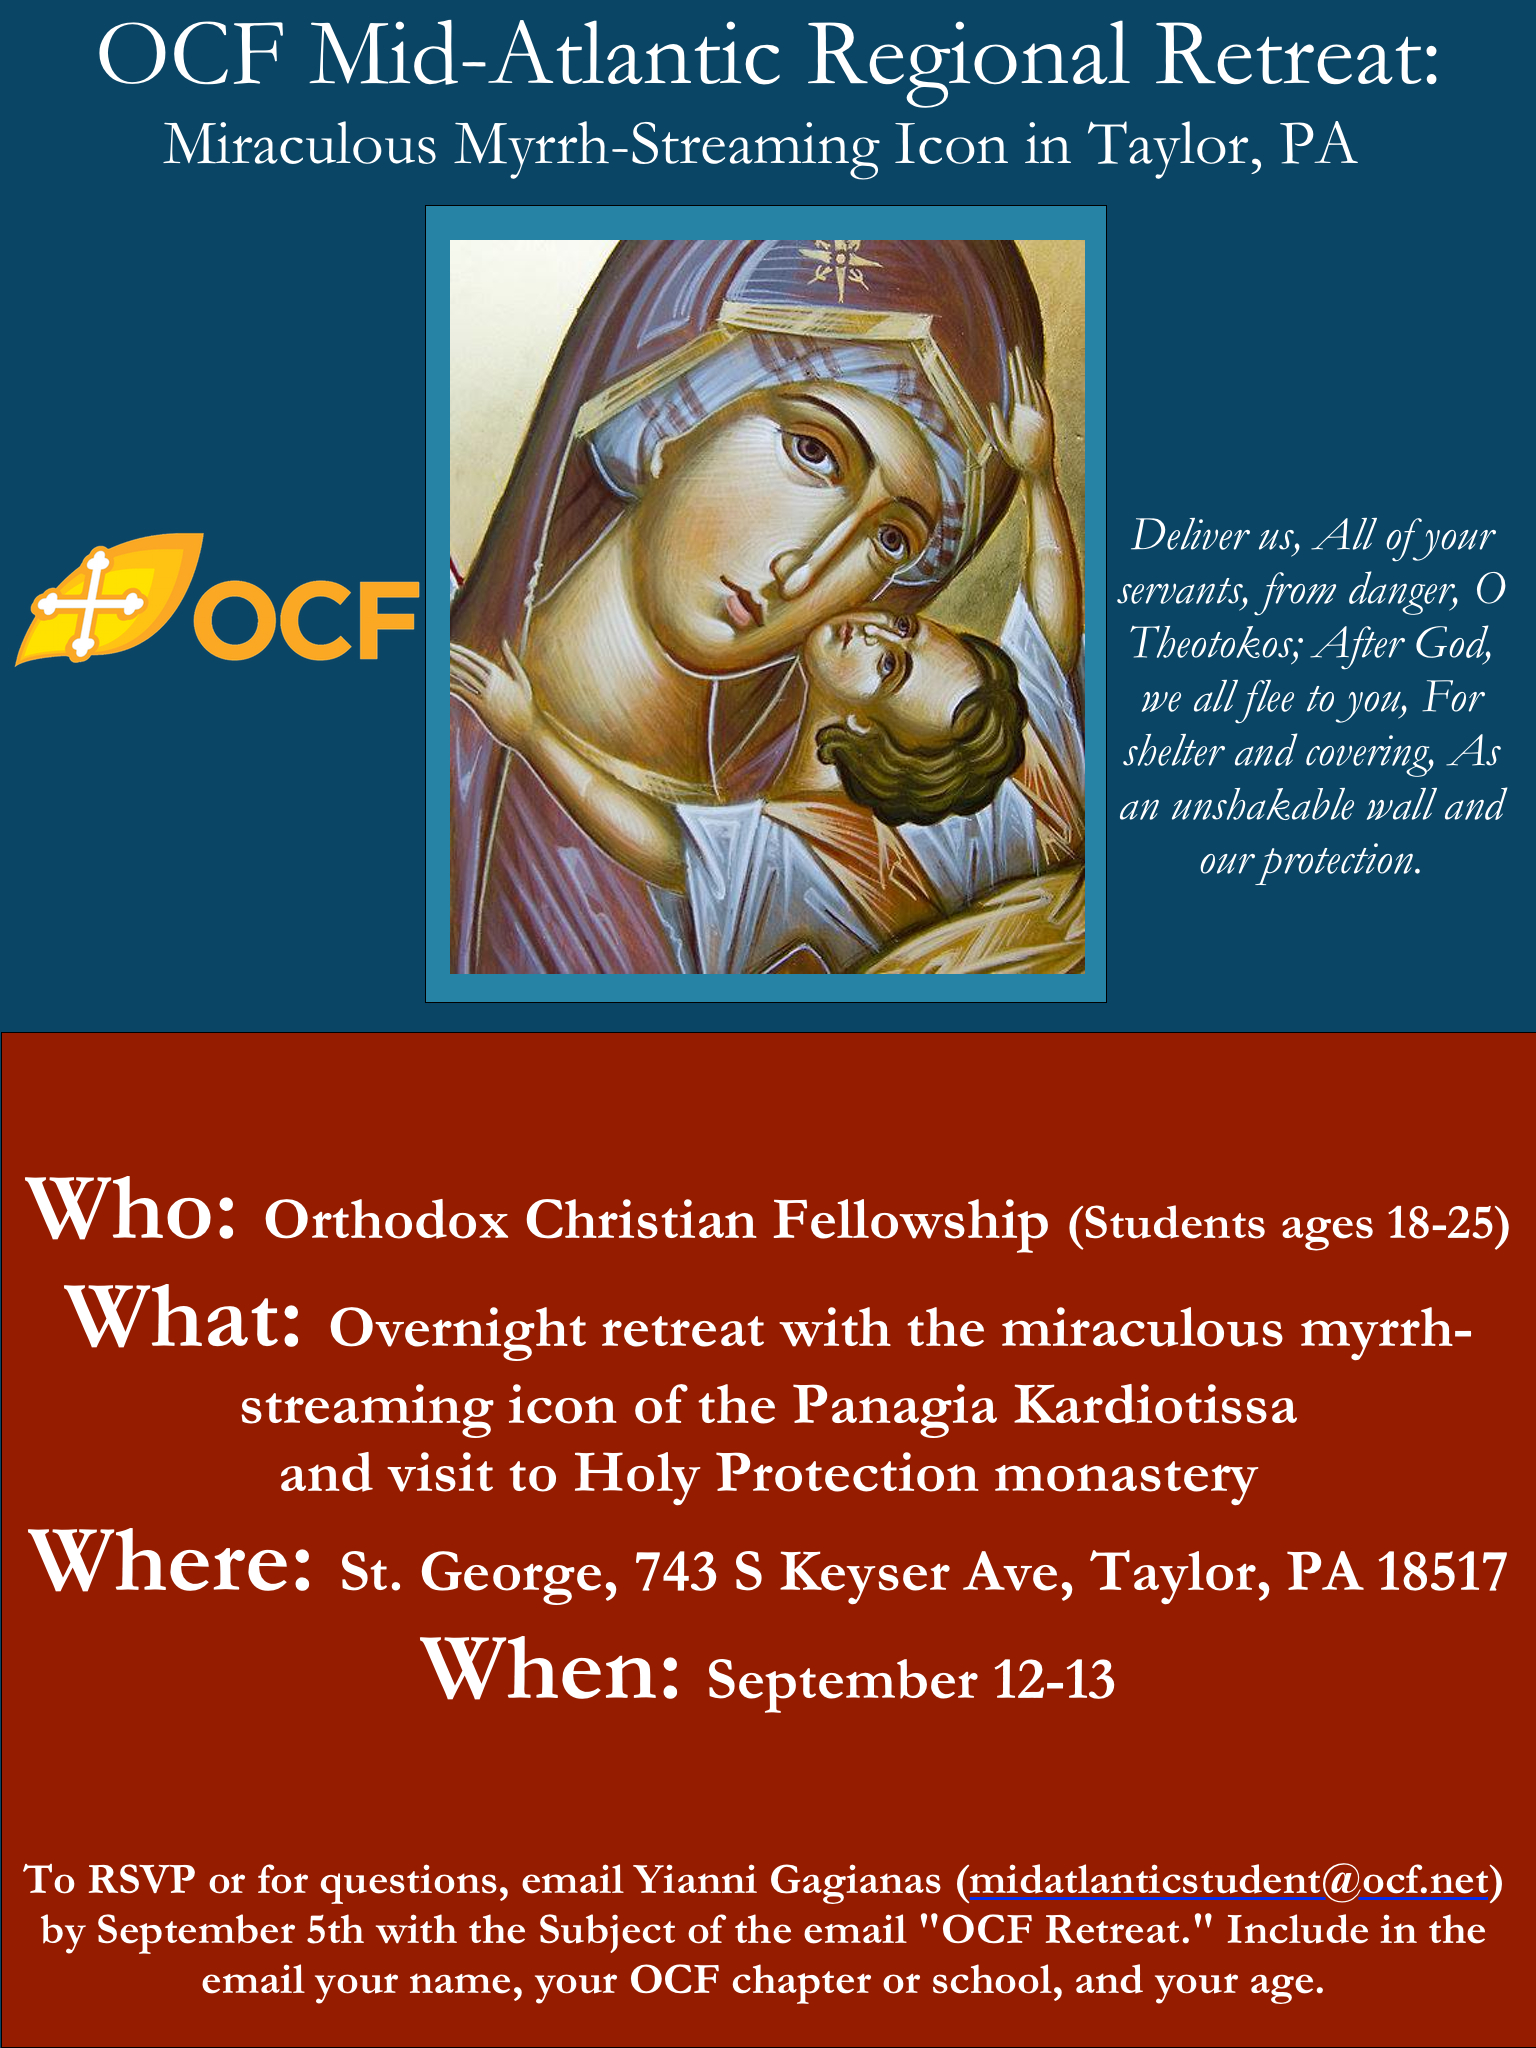 OCF Mid-Atlantic Retreat Flyer